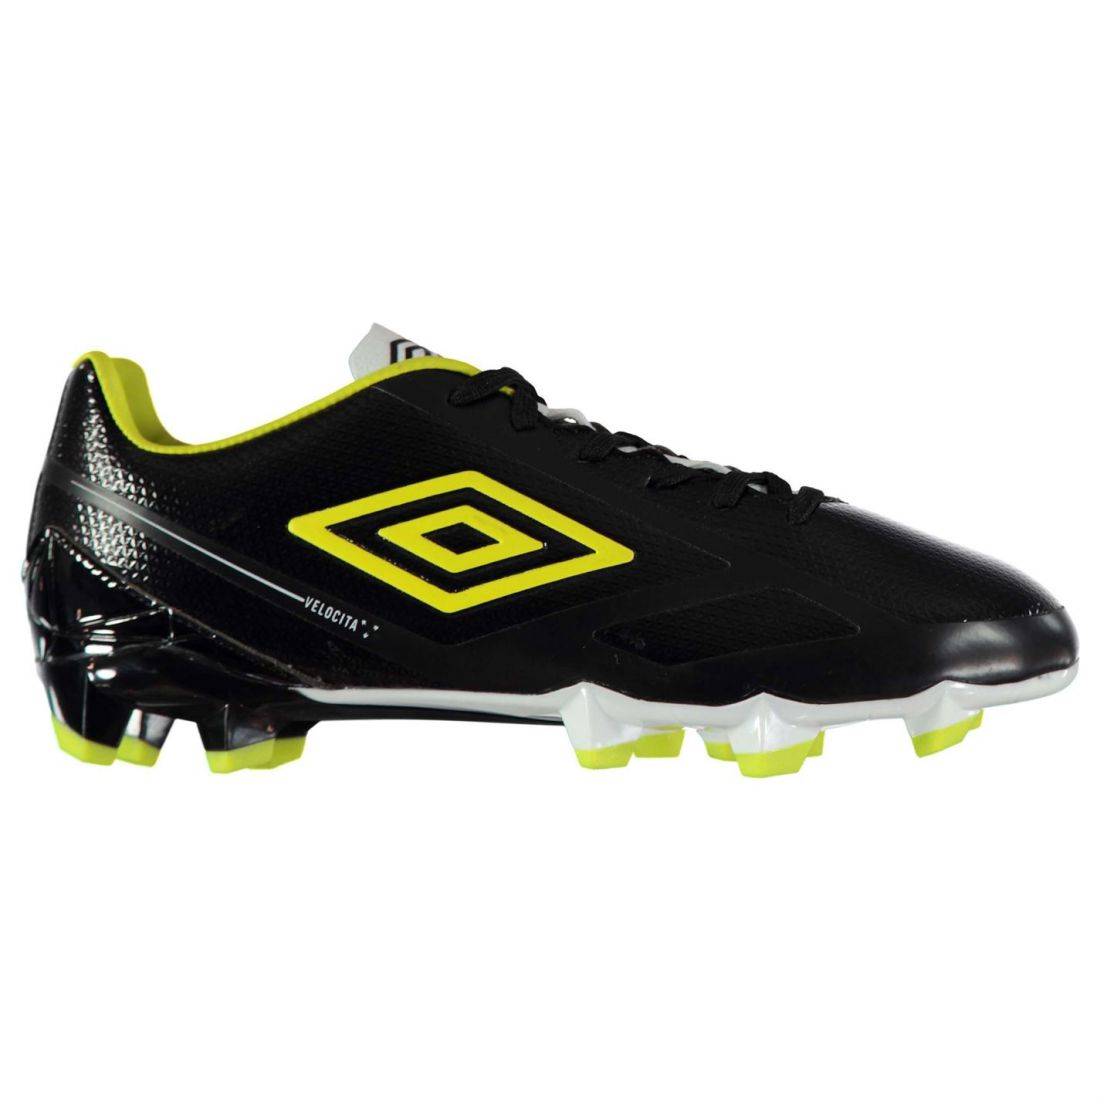 Umbro Velocita 2 Premier FG Football Boots Mens Gents Firm Ground ... 6d711fee3ff97